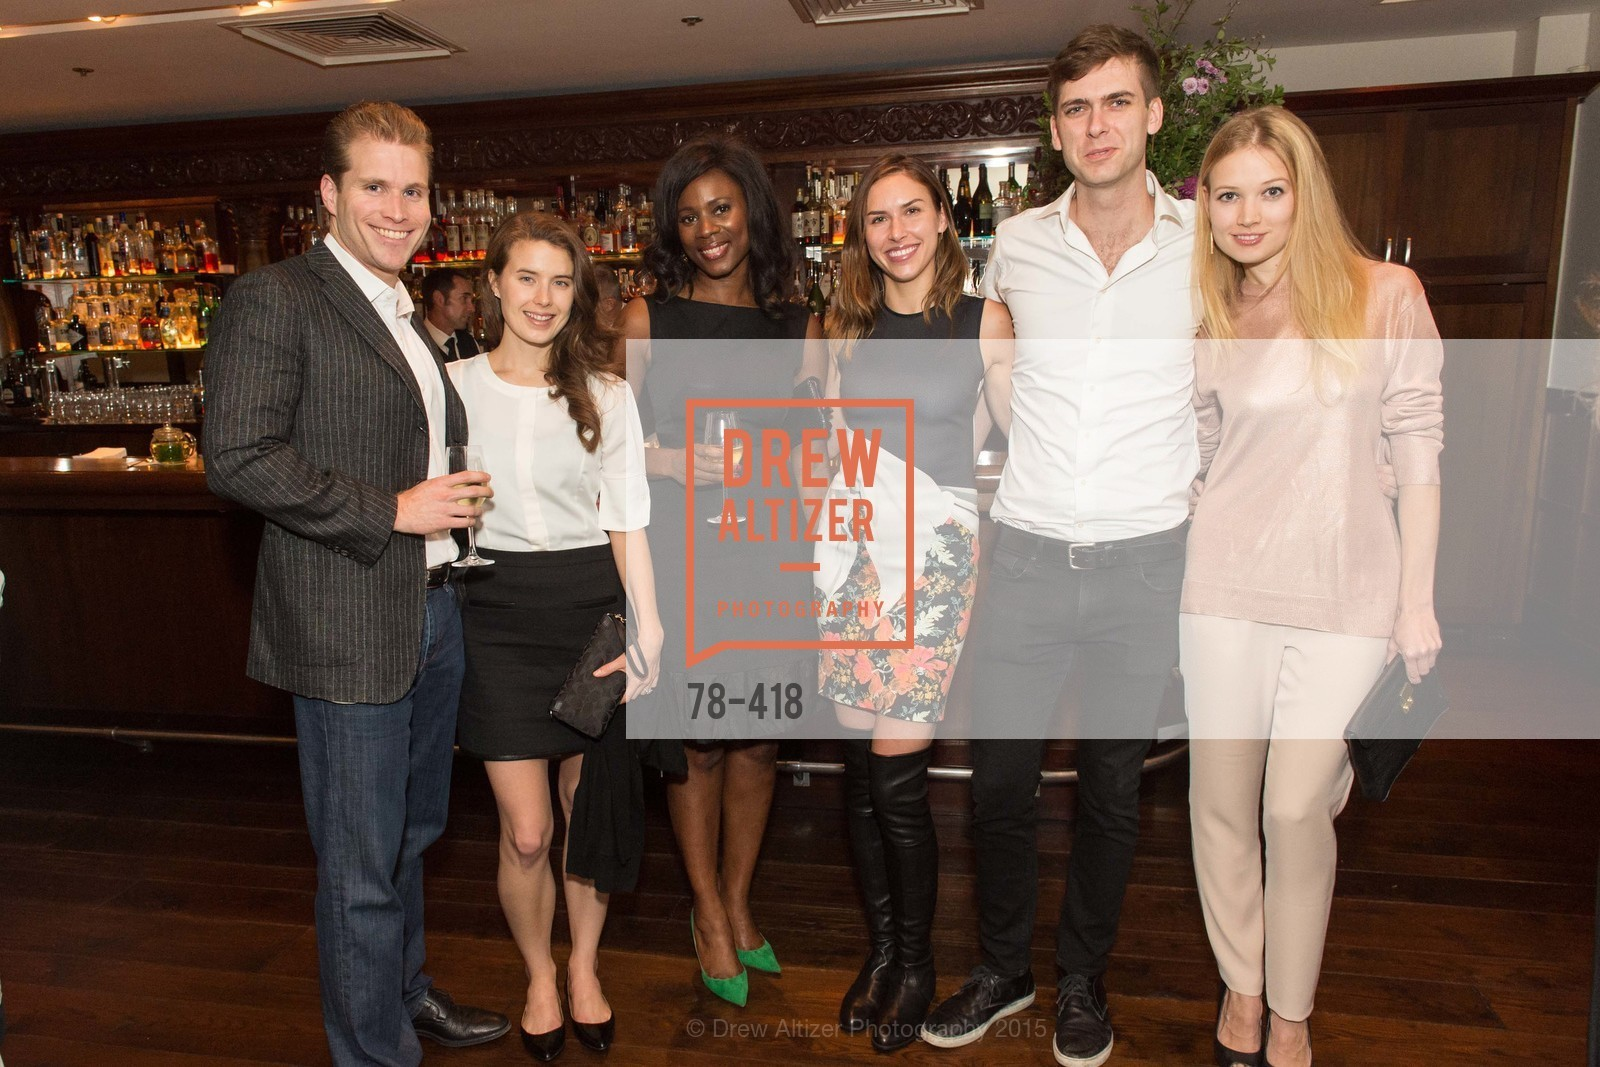 Joe Lonsdale, Tayler Cox, NIna Mundi, Felicity Conrad, Carter Cleveland, Elena Soboleva, Artsy and Sotheby's Village Pub Dinner, Village Pub, October 27th, 2015,Drew Altizer, Drew Altizer Photography, full-service agency, private events, San Francisco photographer, photographer california